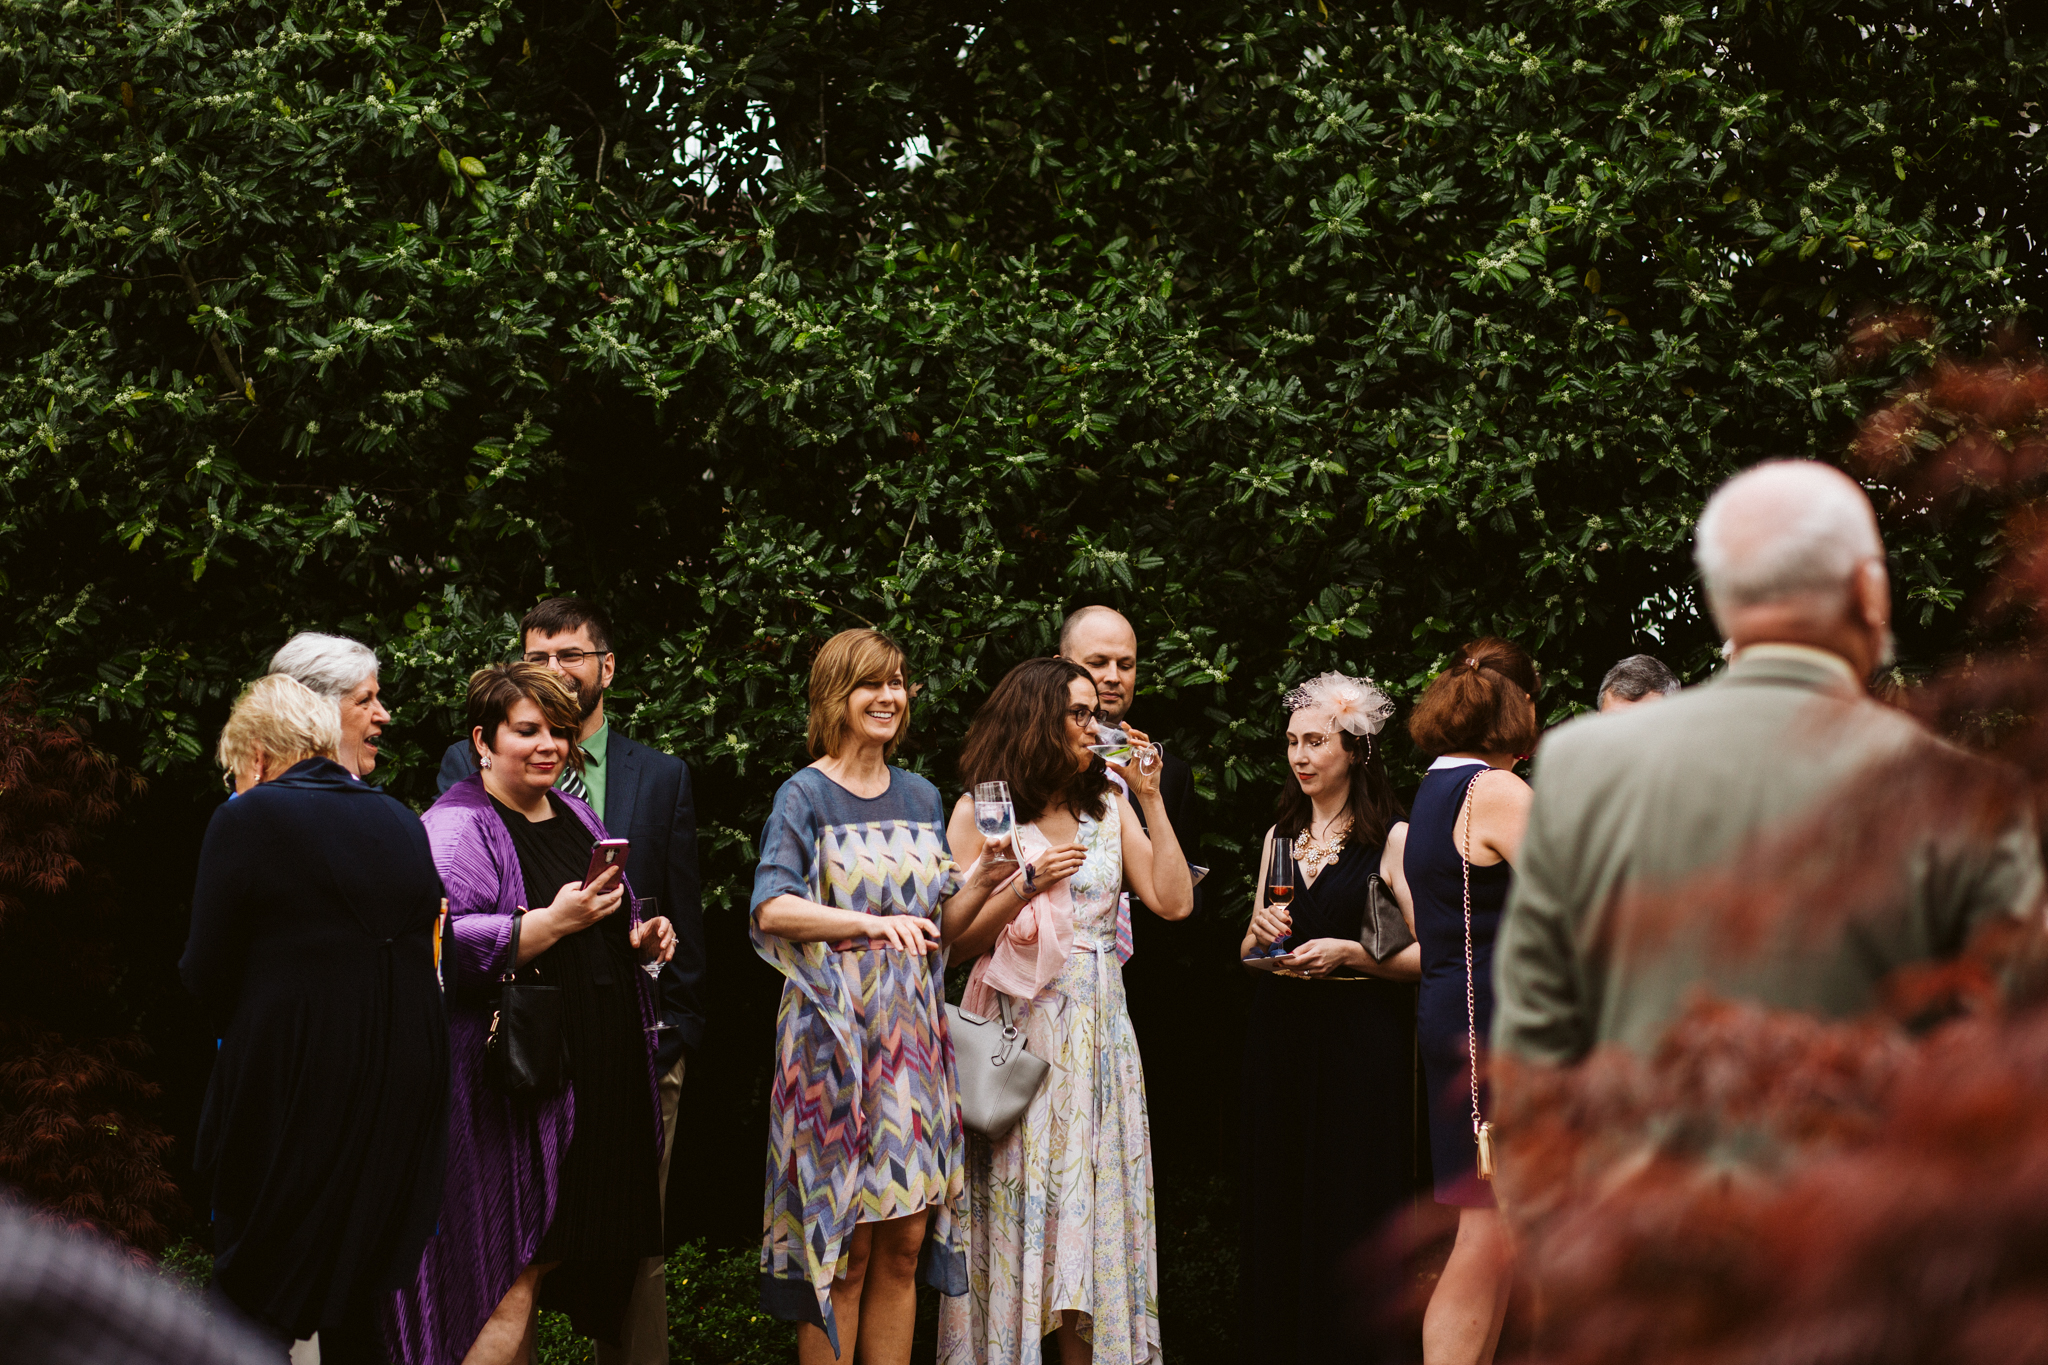 cook_wedding_richmond_virginia_rebecca_burt_photography-23.jpg